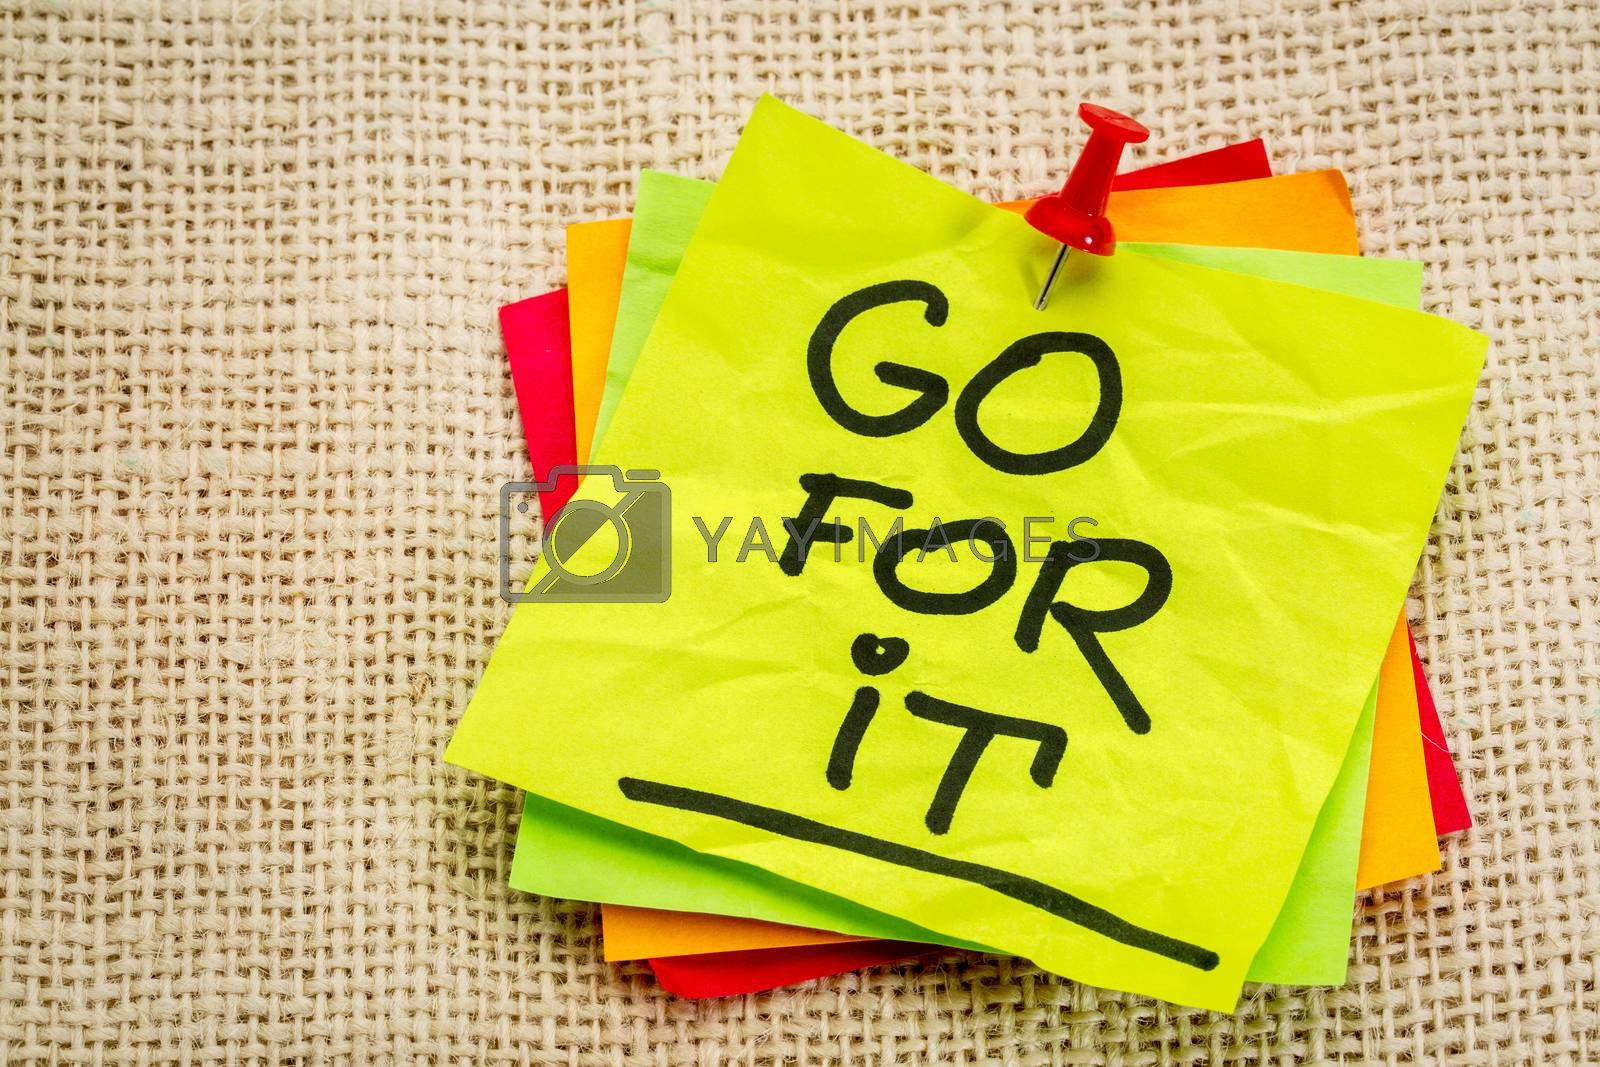 Go for it - motivational handwriting on a sticky note against burlap canvas